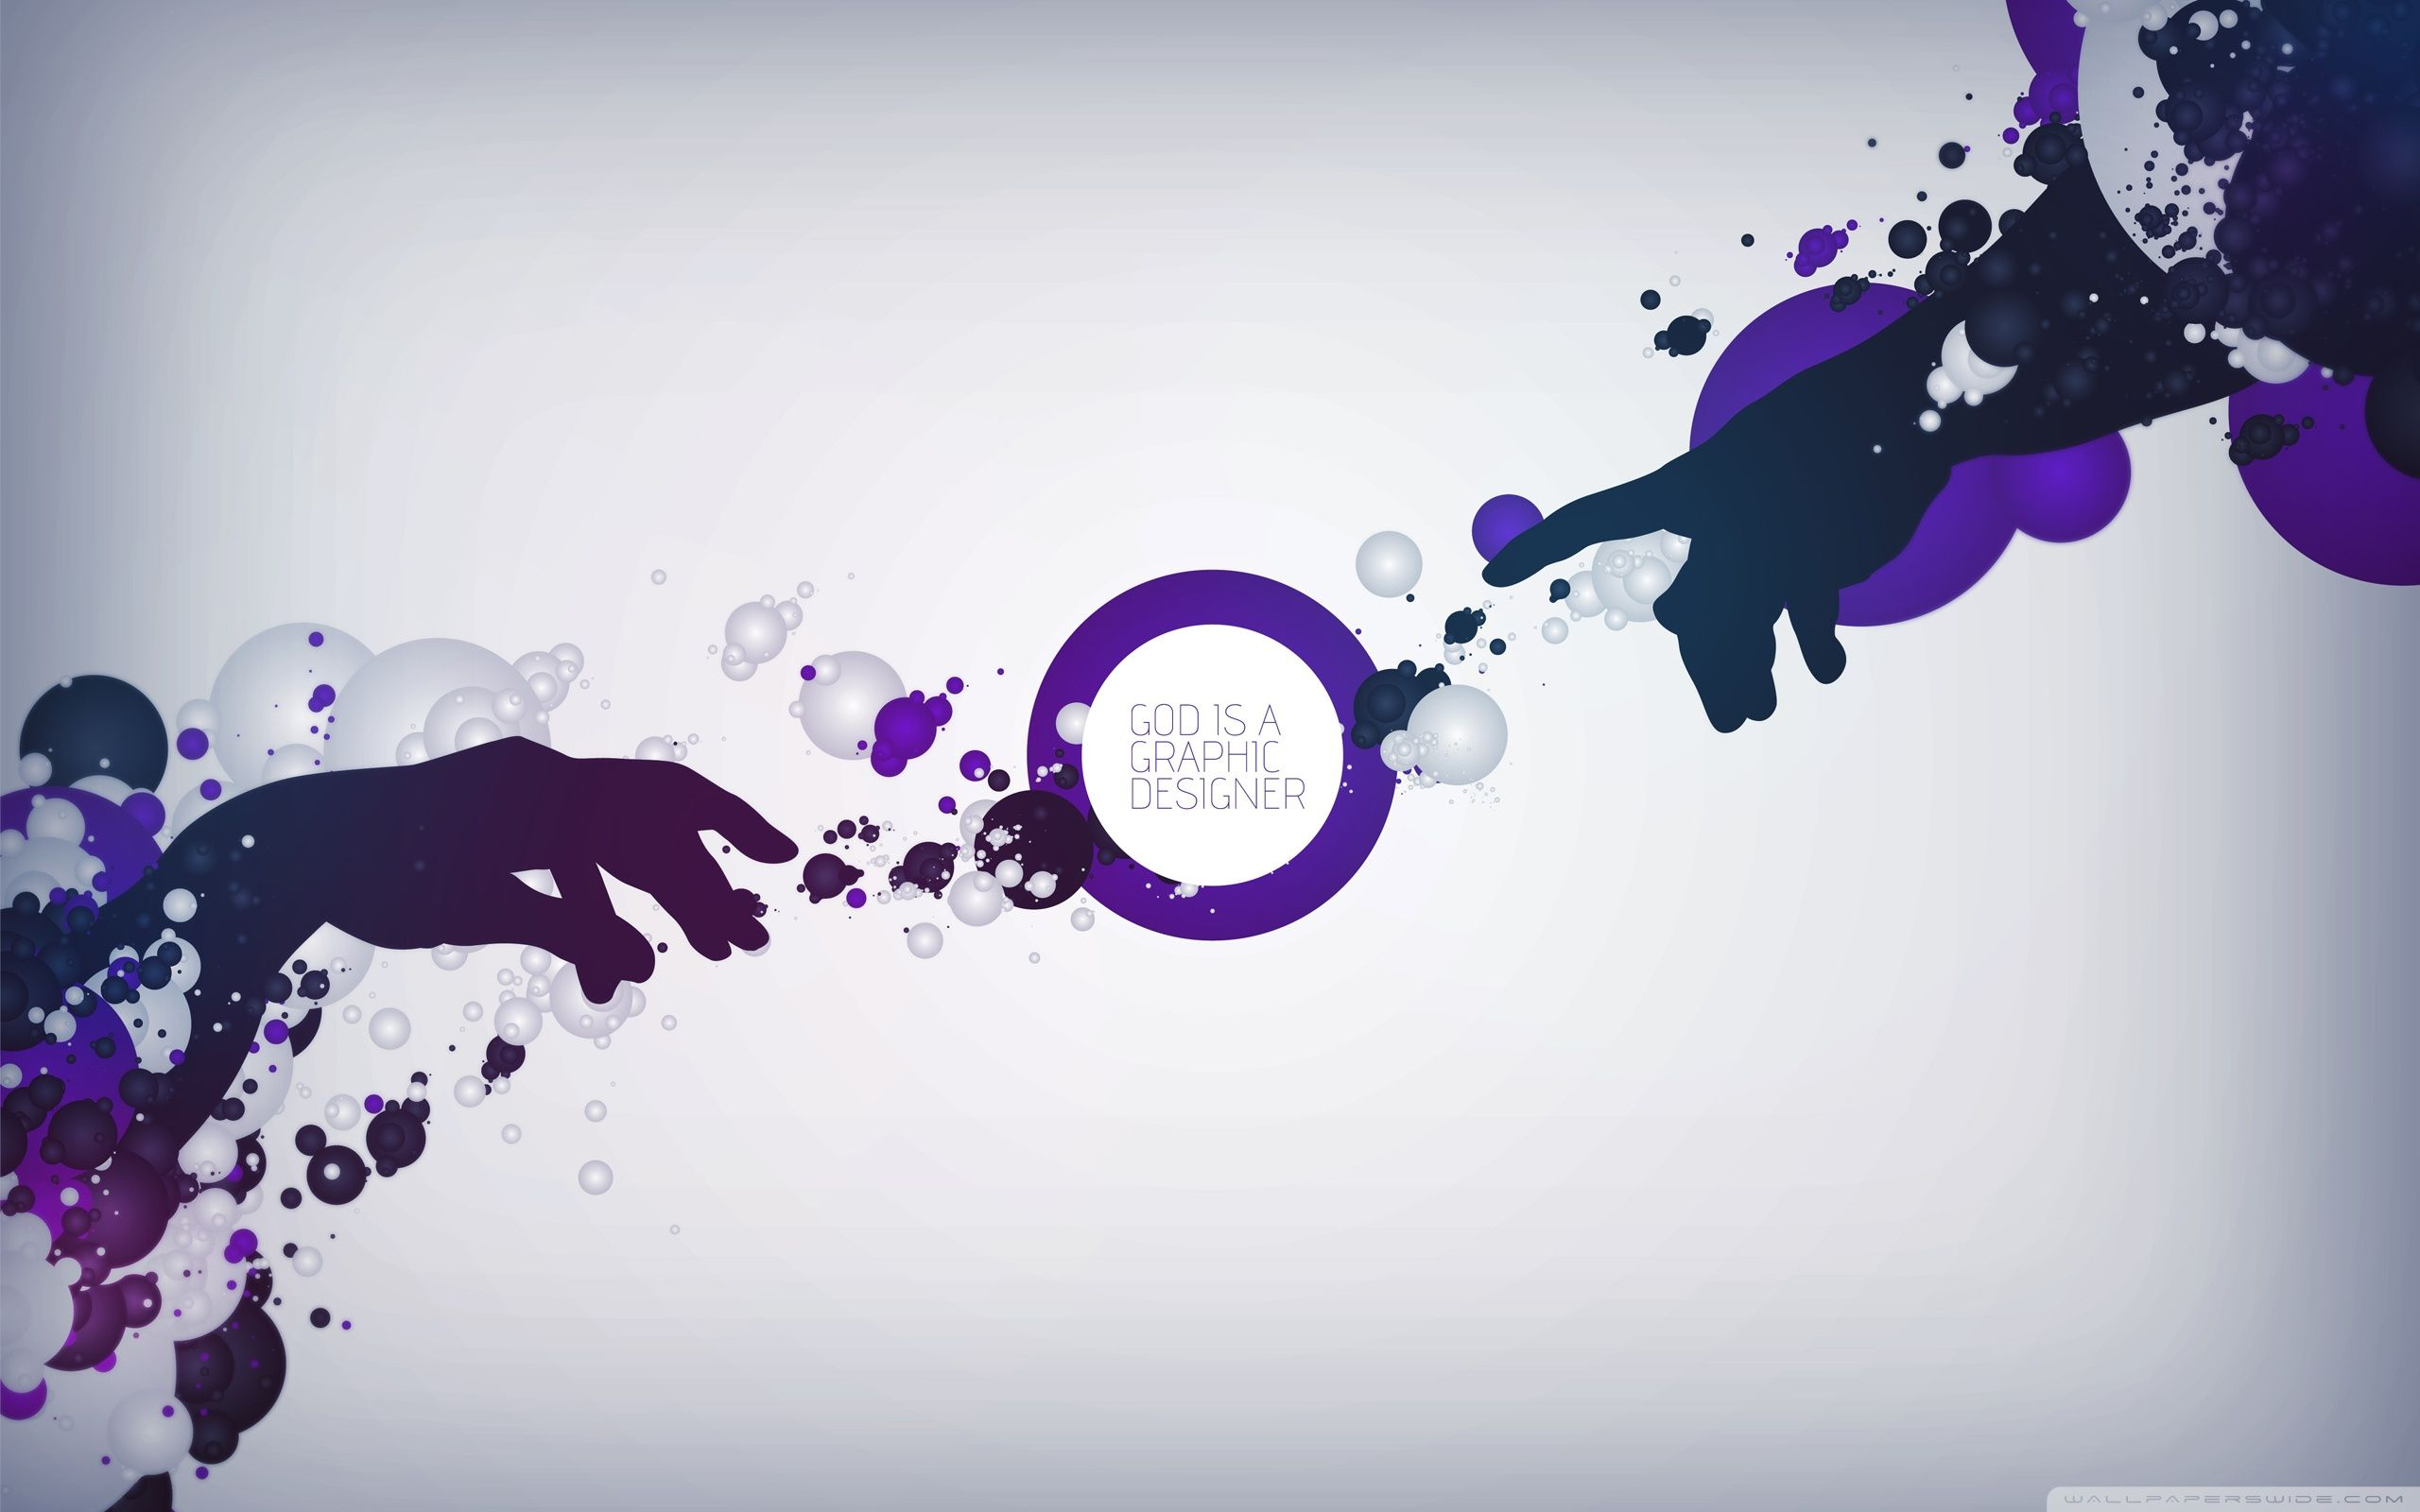 Graphic Design Wallpapers Top Free Graphic Design